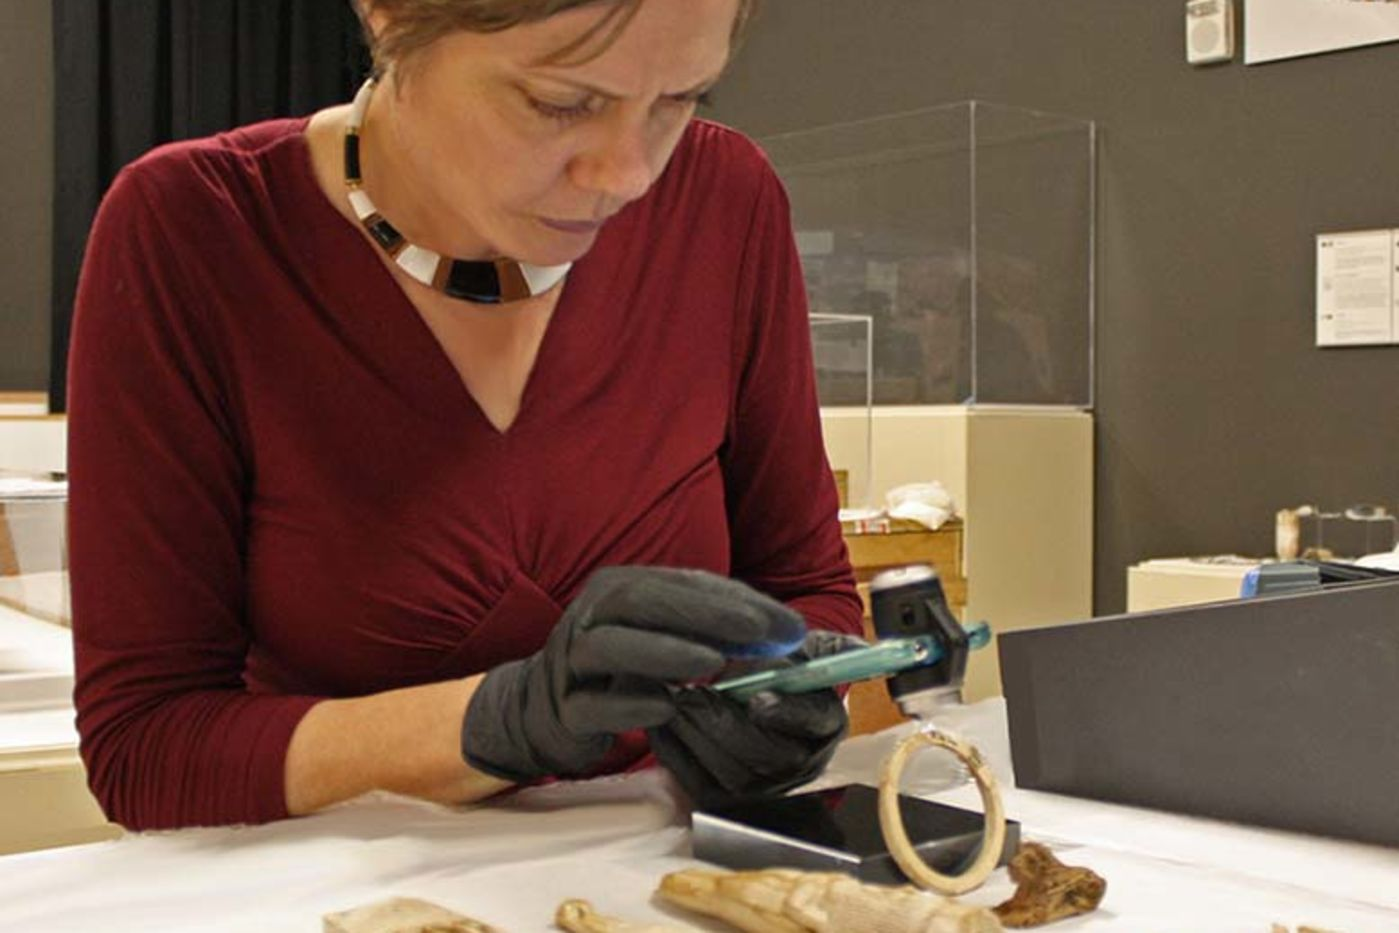 A woman wearing gloves holds a small device over a group of carved ivory objects